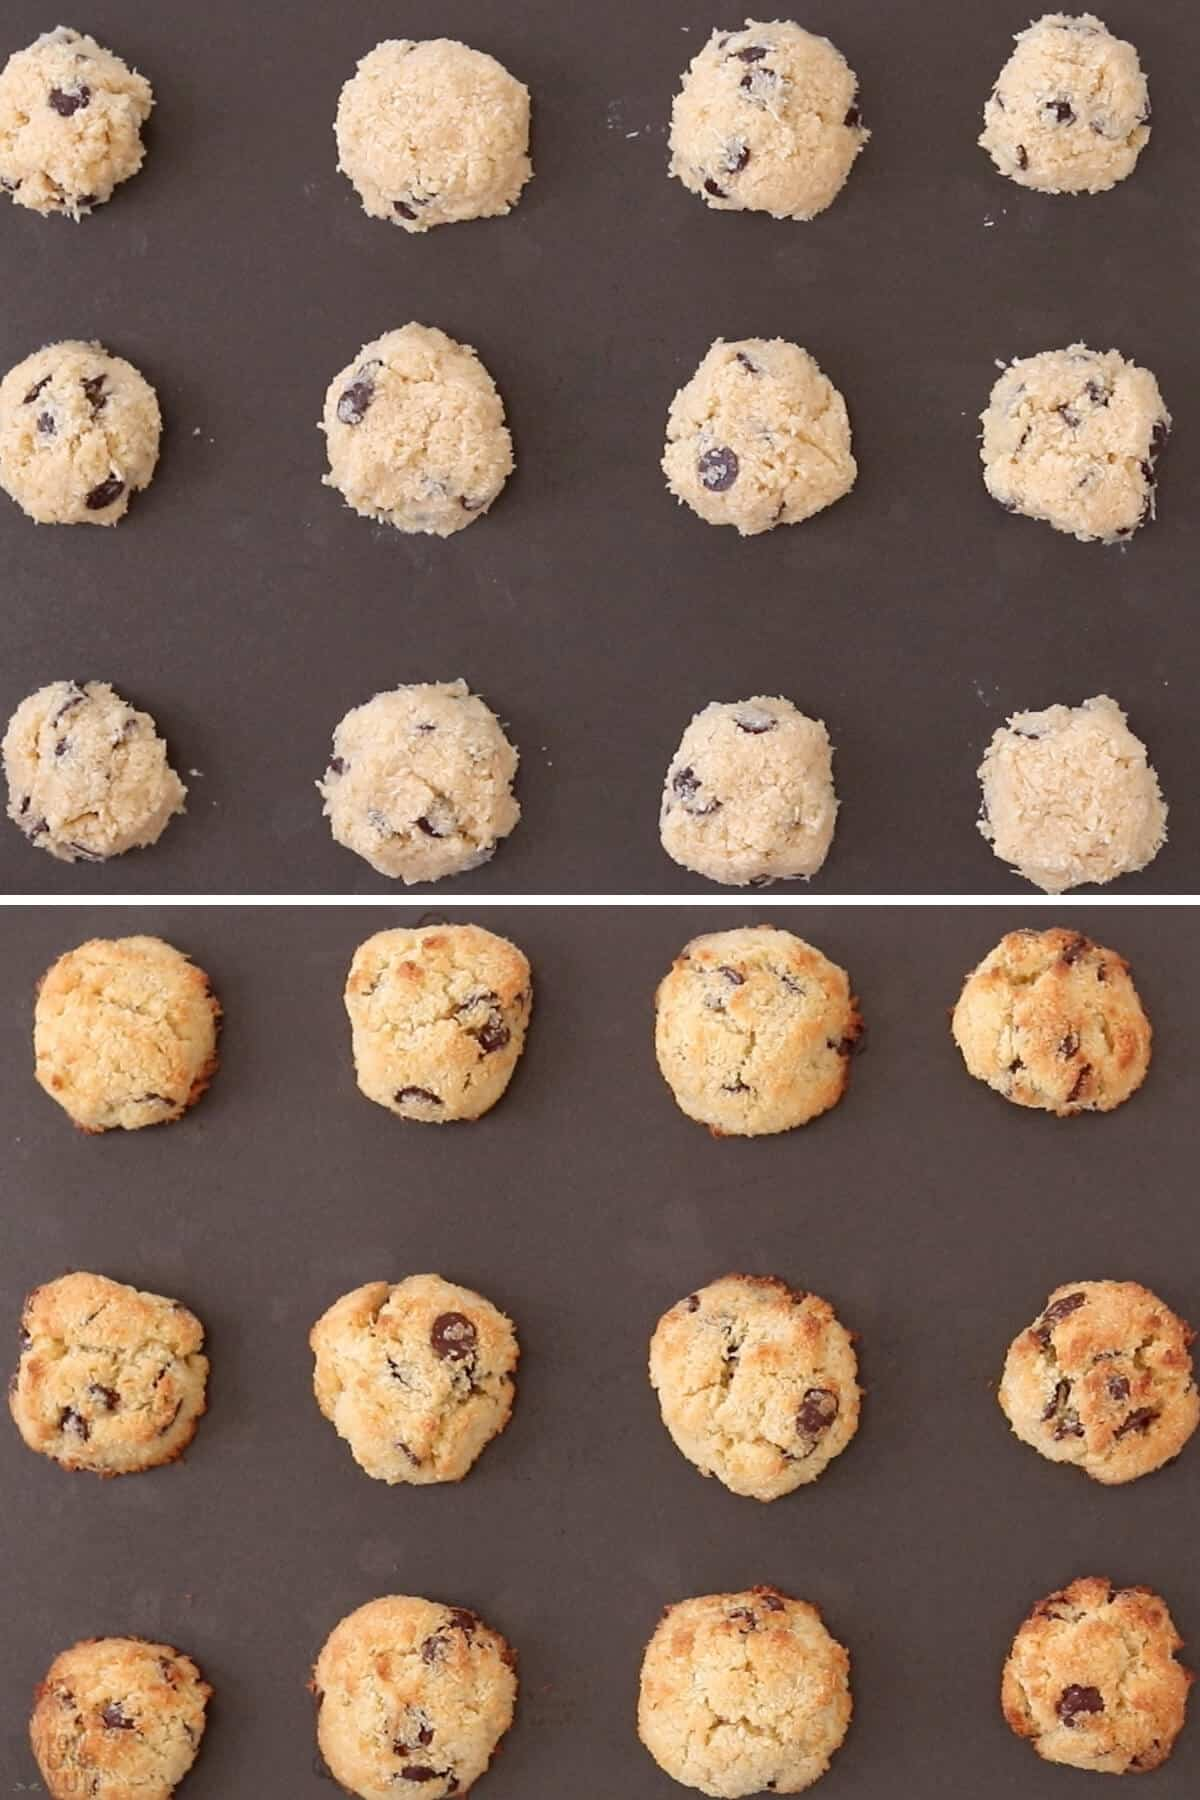 baking the cookie dough scoops